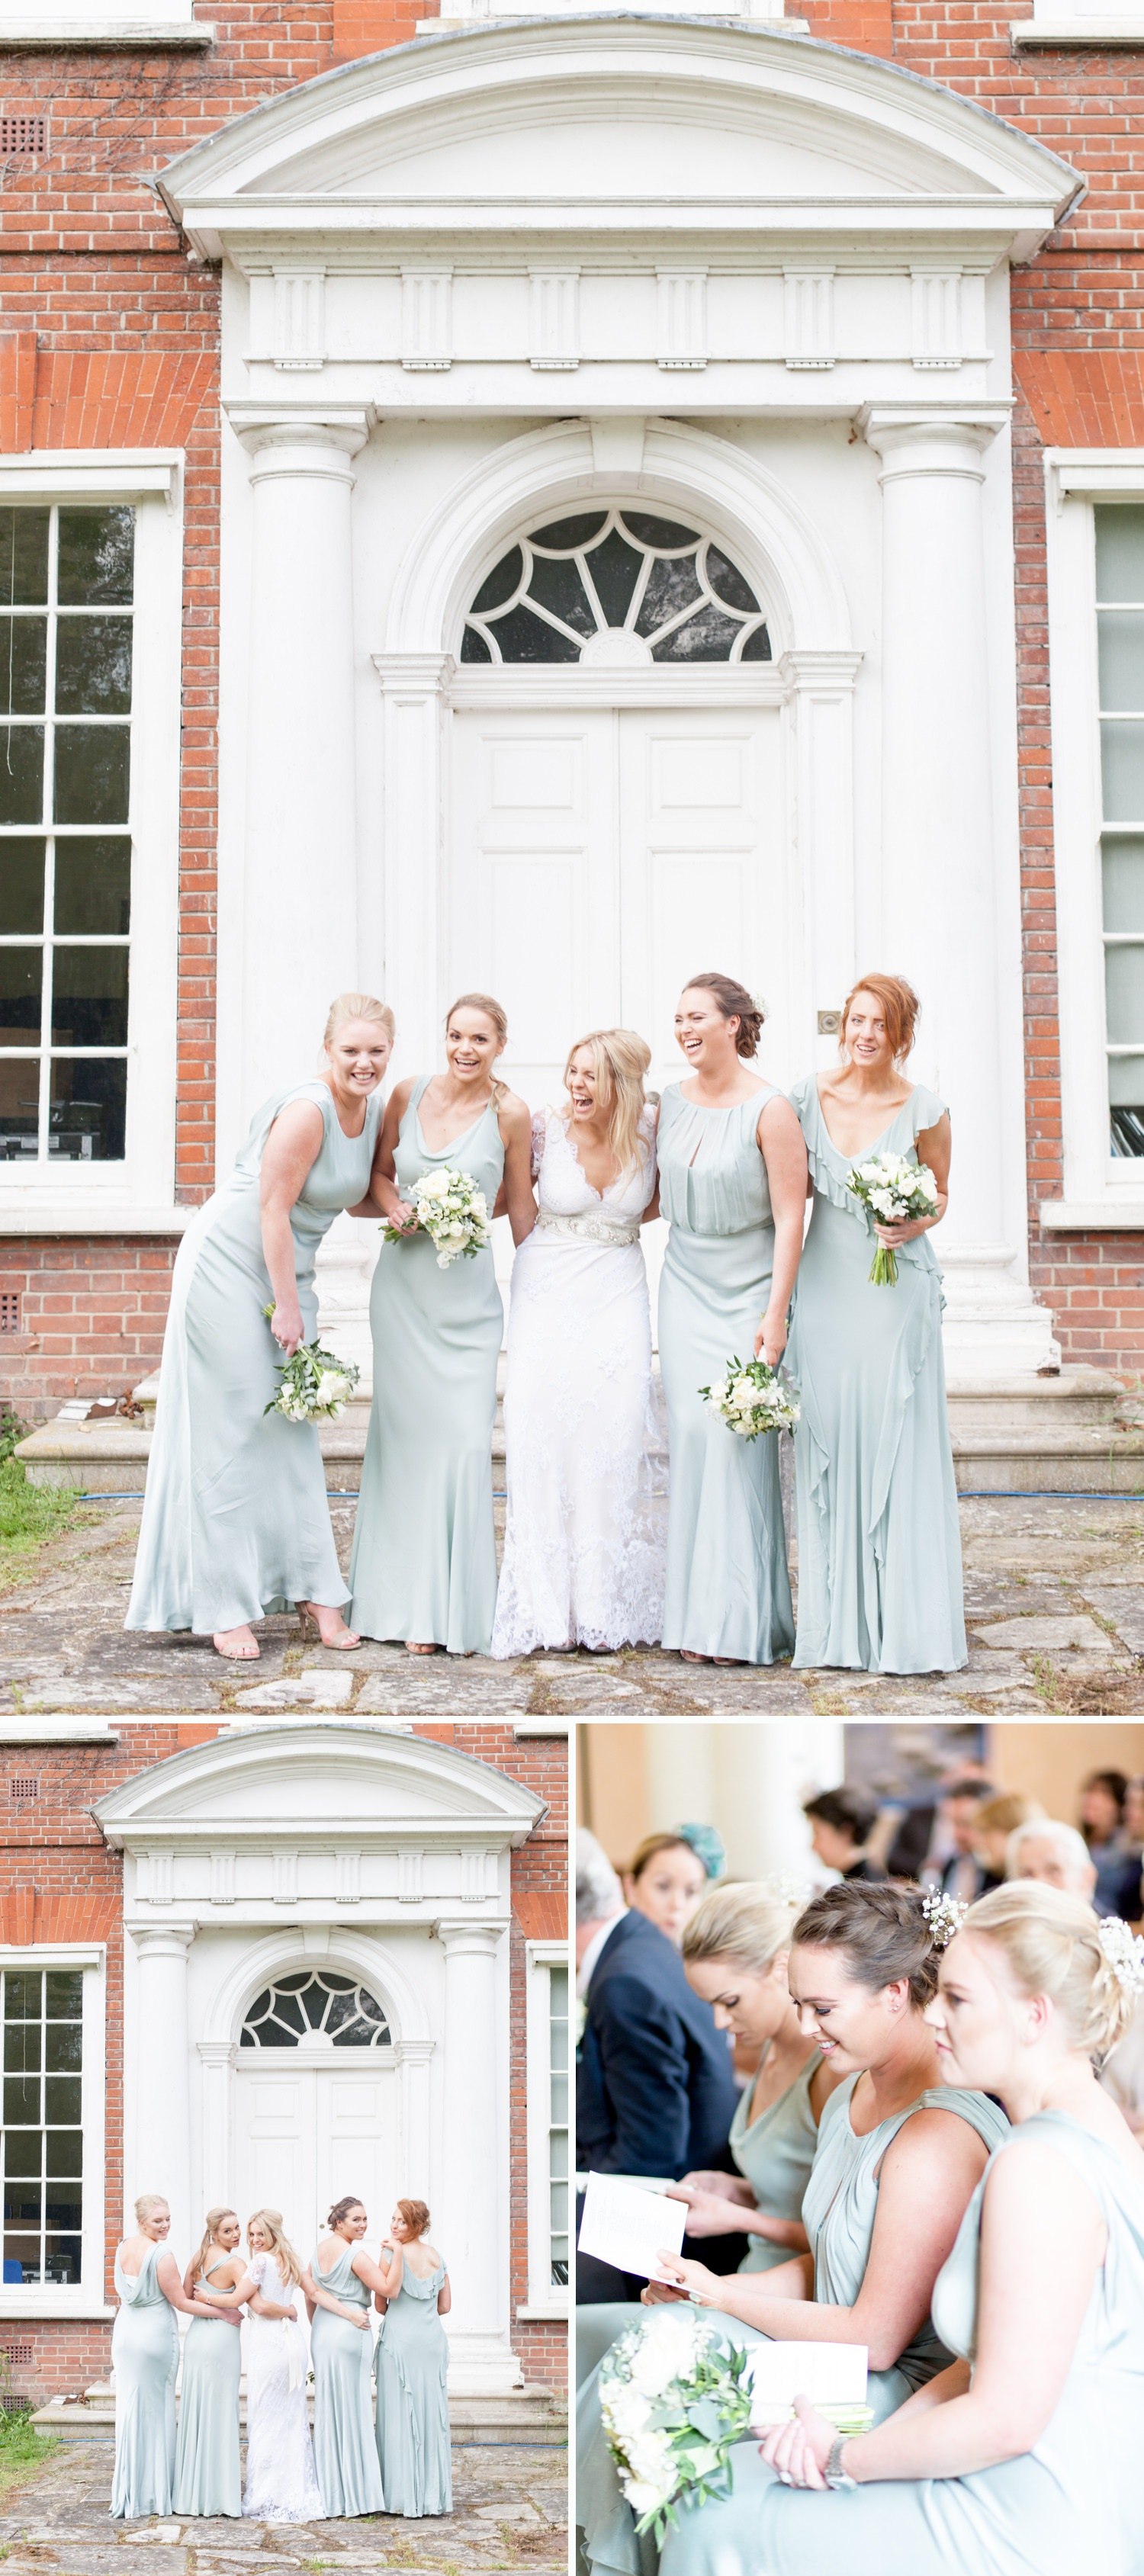 Emily & Jonathan's Cambridgeshire wedding - a bride with her bridesmaids